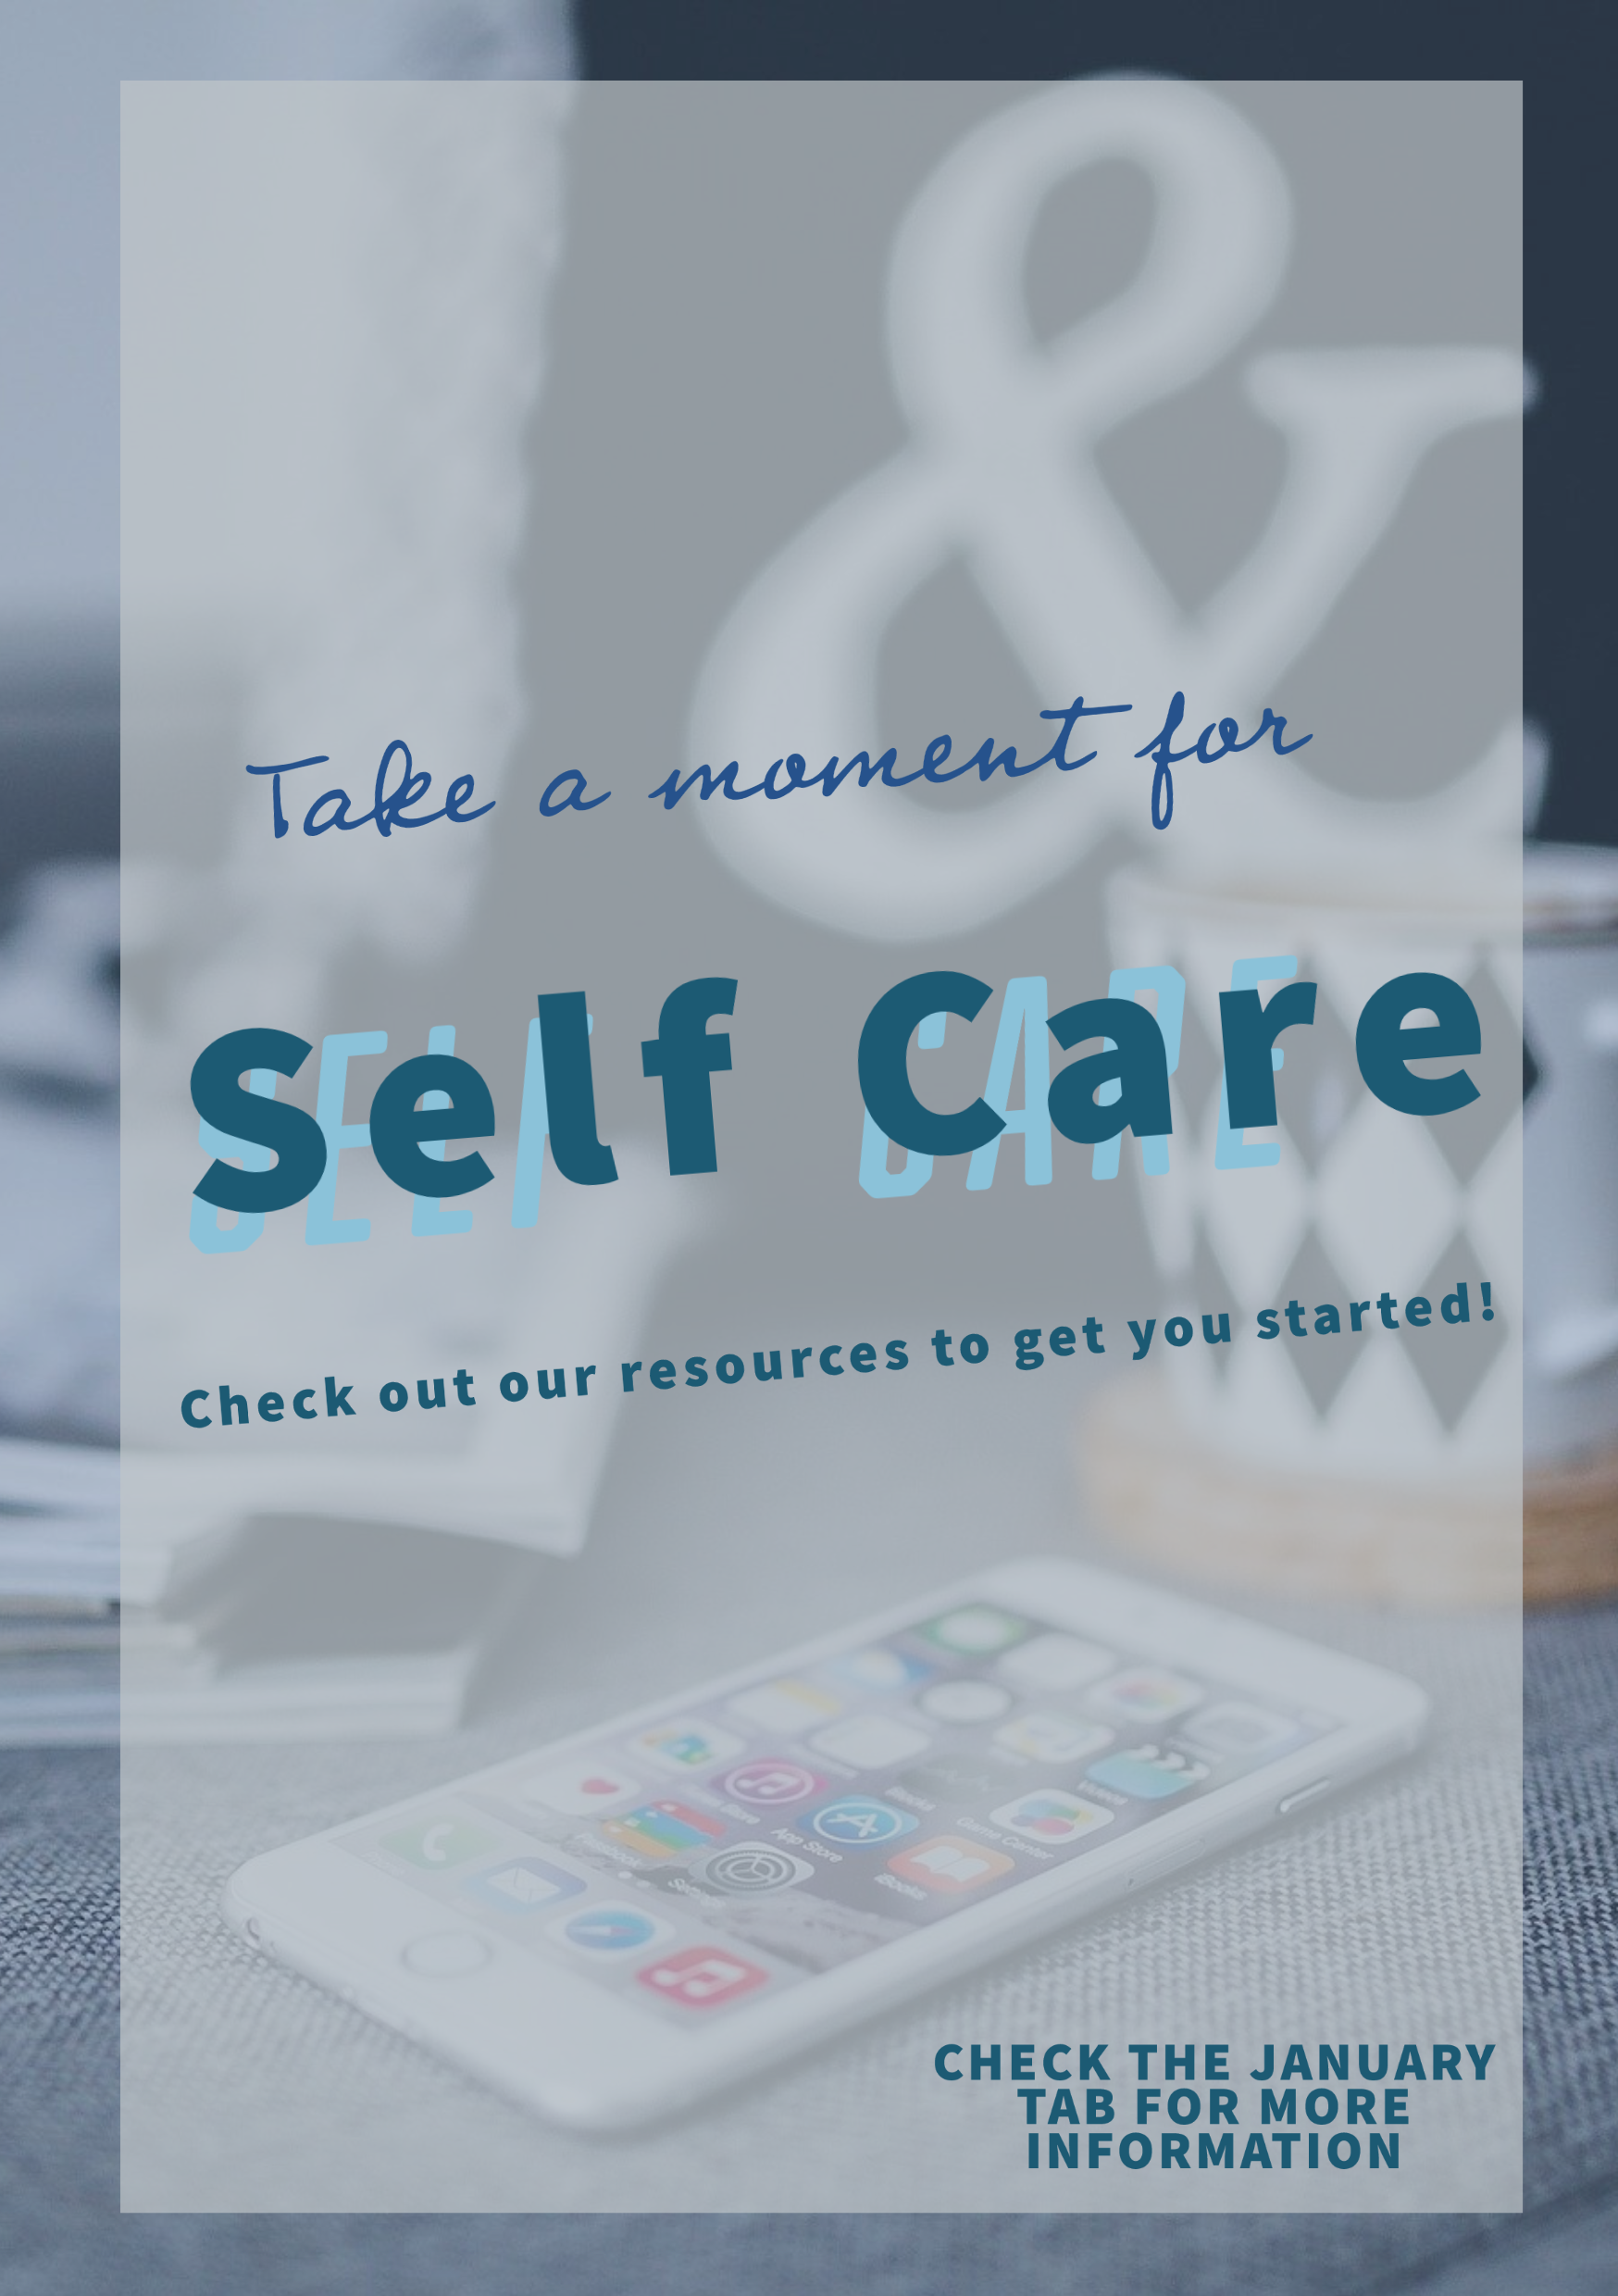 Take a moment for self care   Check out our resources to get you started!   Check the January tab for more information   Desk background